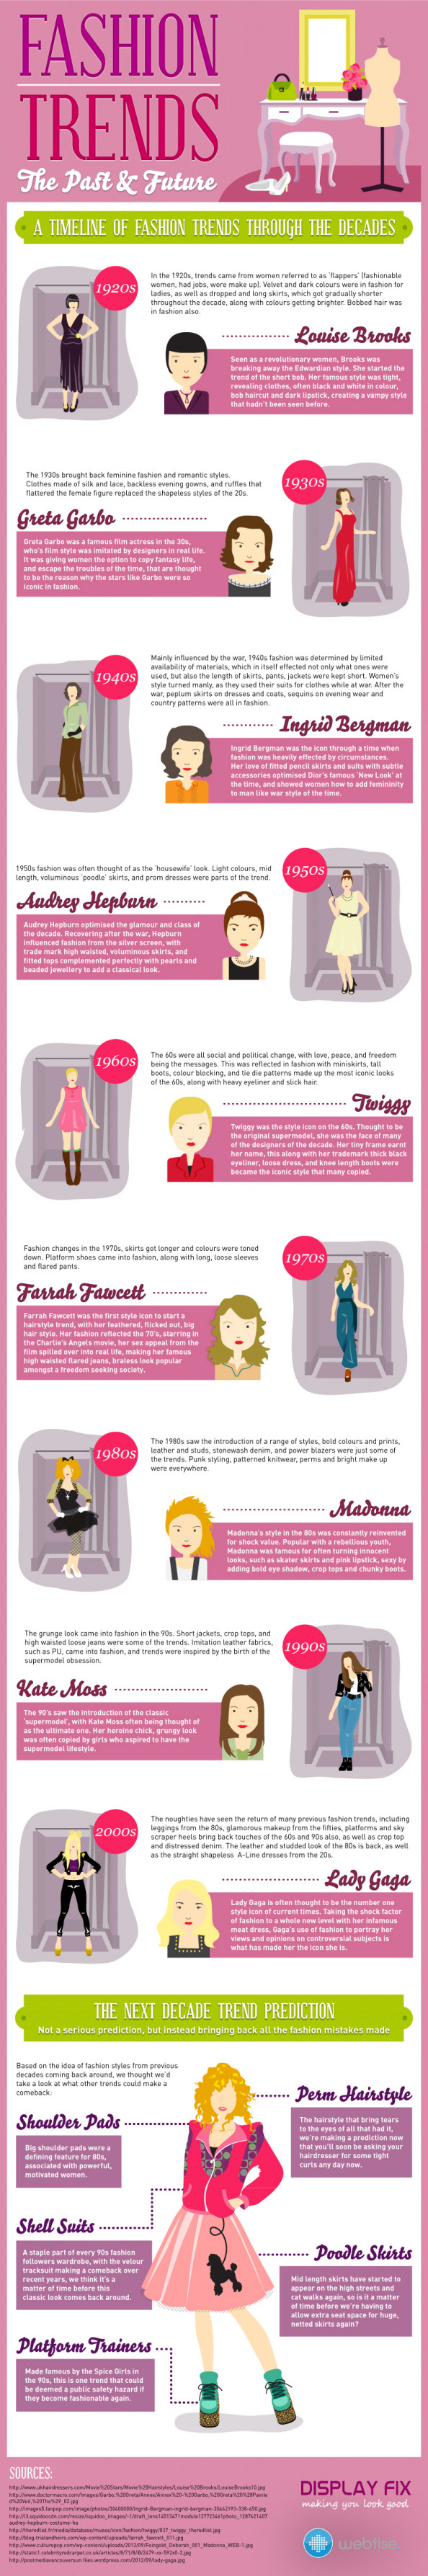 Fashion Trends  The Past &amp; Future Infographic